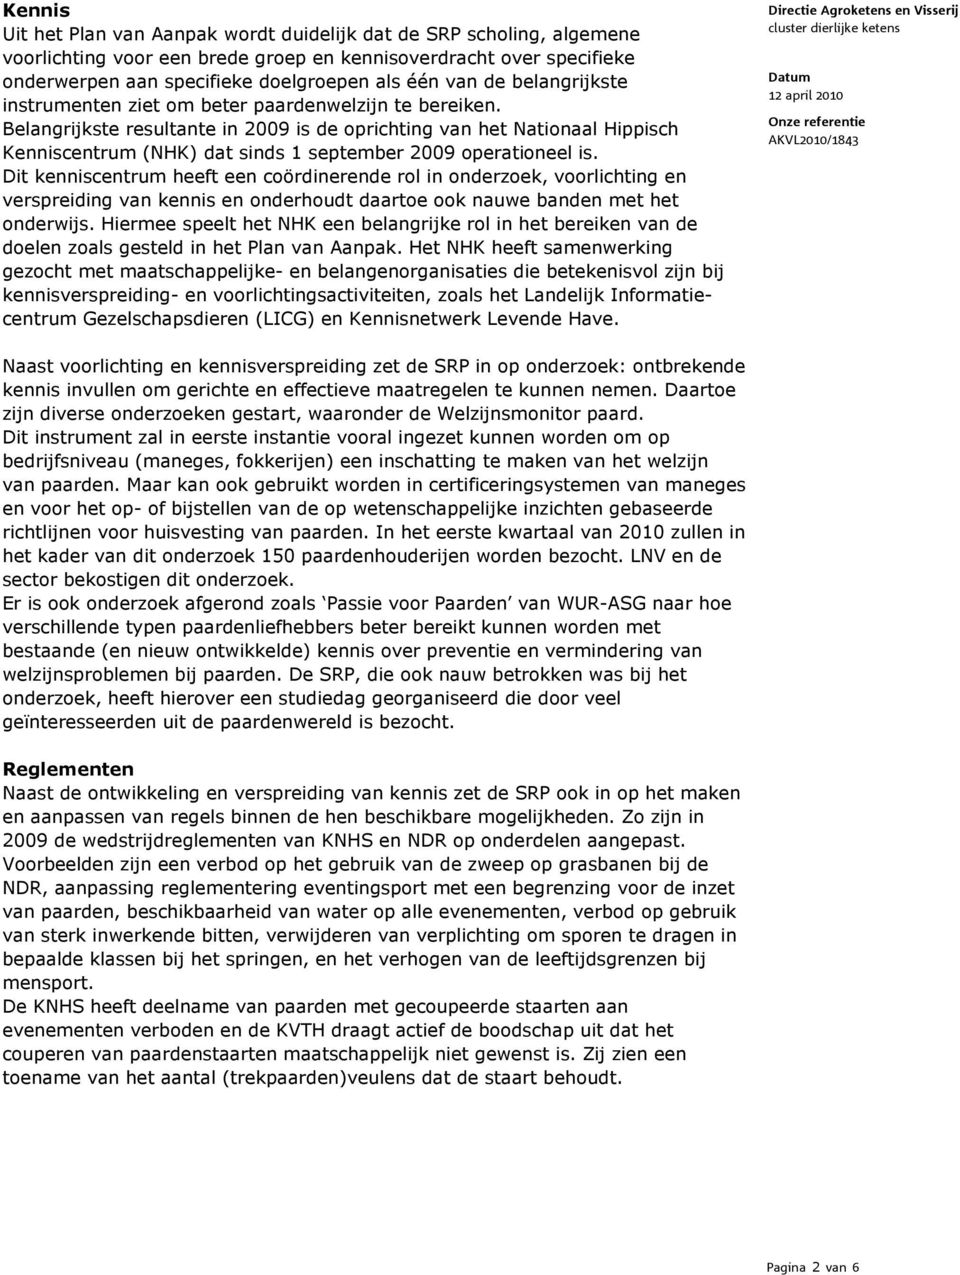 Belangrijkste resultante in 2009 is de oprichting van het Nationaal Hippisch Kenniscentrum (NHK) dat sinds 1 september 2009 operationeel is.